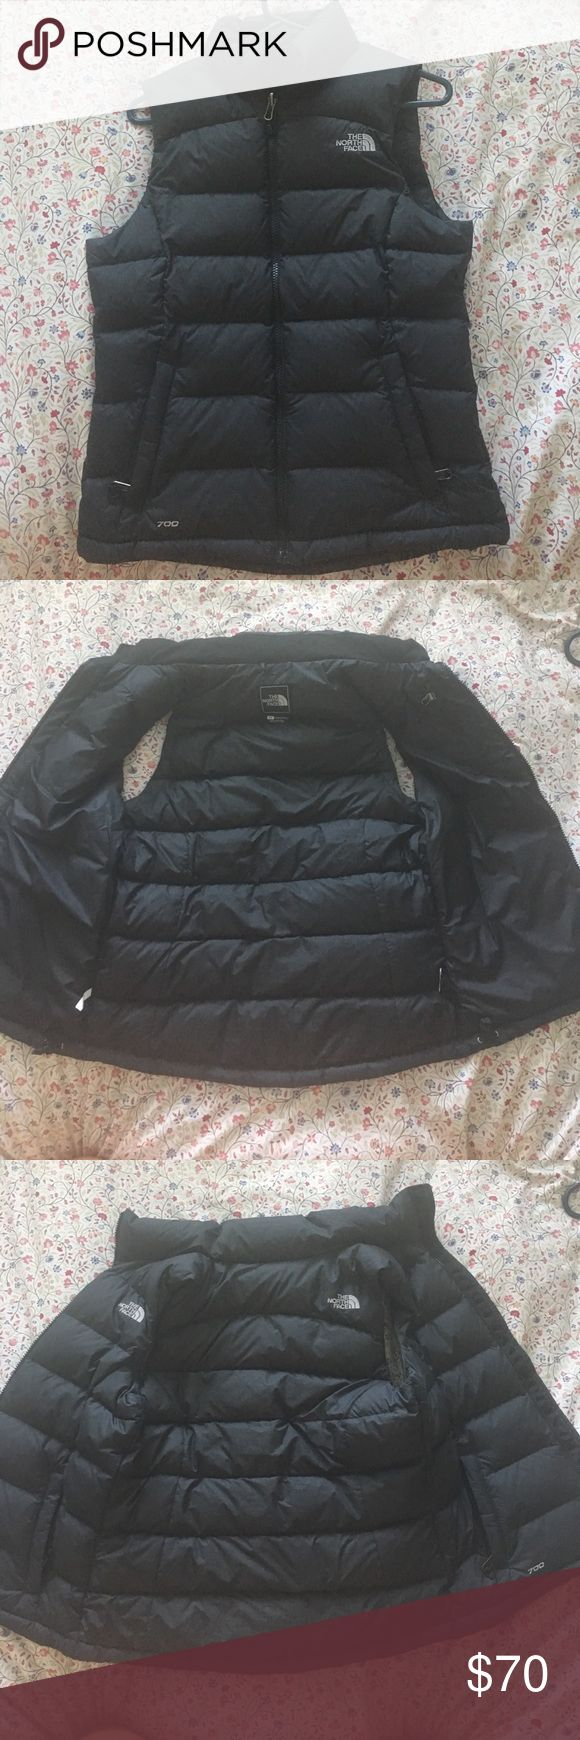 The North Face Nuptse Down Vest -Black Women's Very well kept condition North Face vest. No distinguishable spots and all the zippers work perfect! Super comfy and great for winter and fall! North Face Jackets & Coats Vests